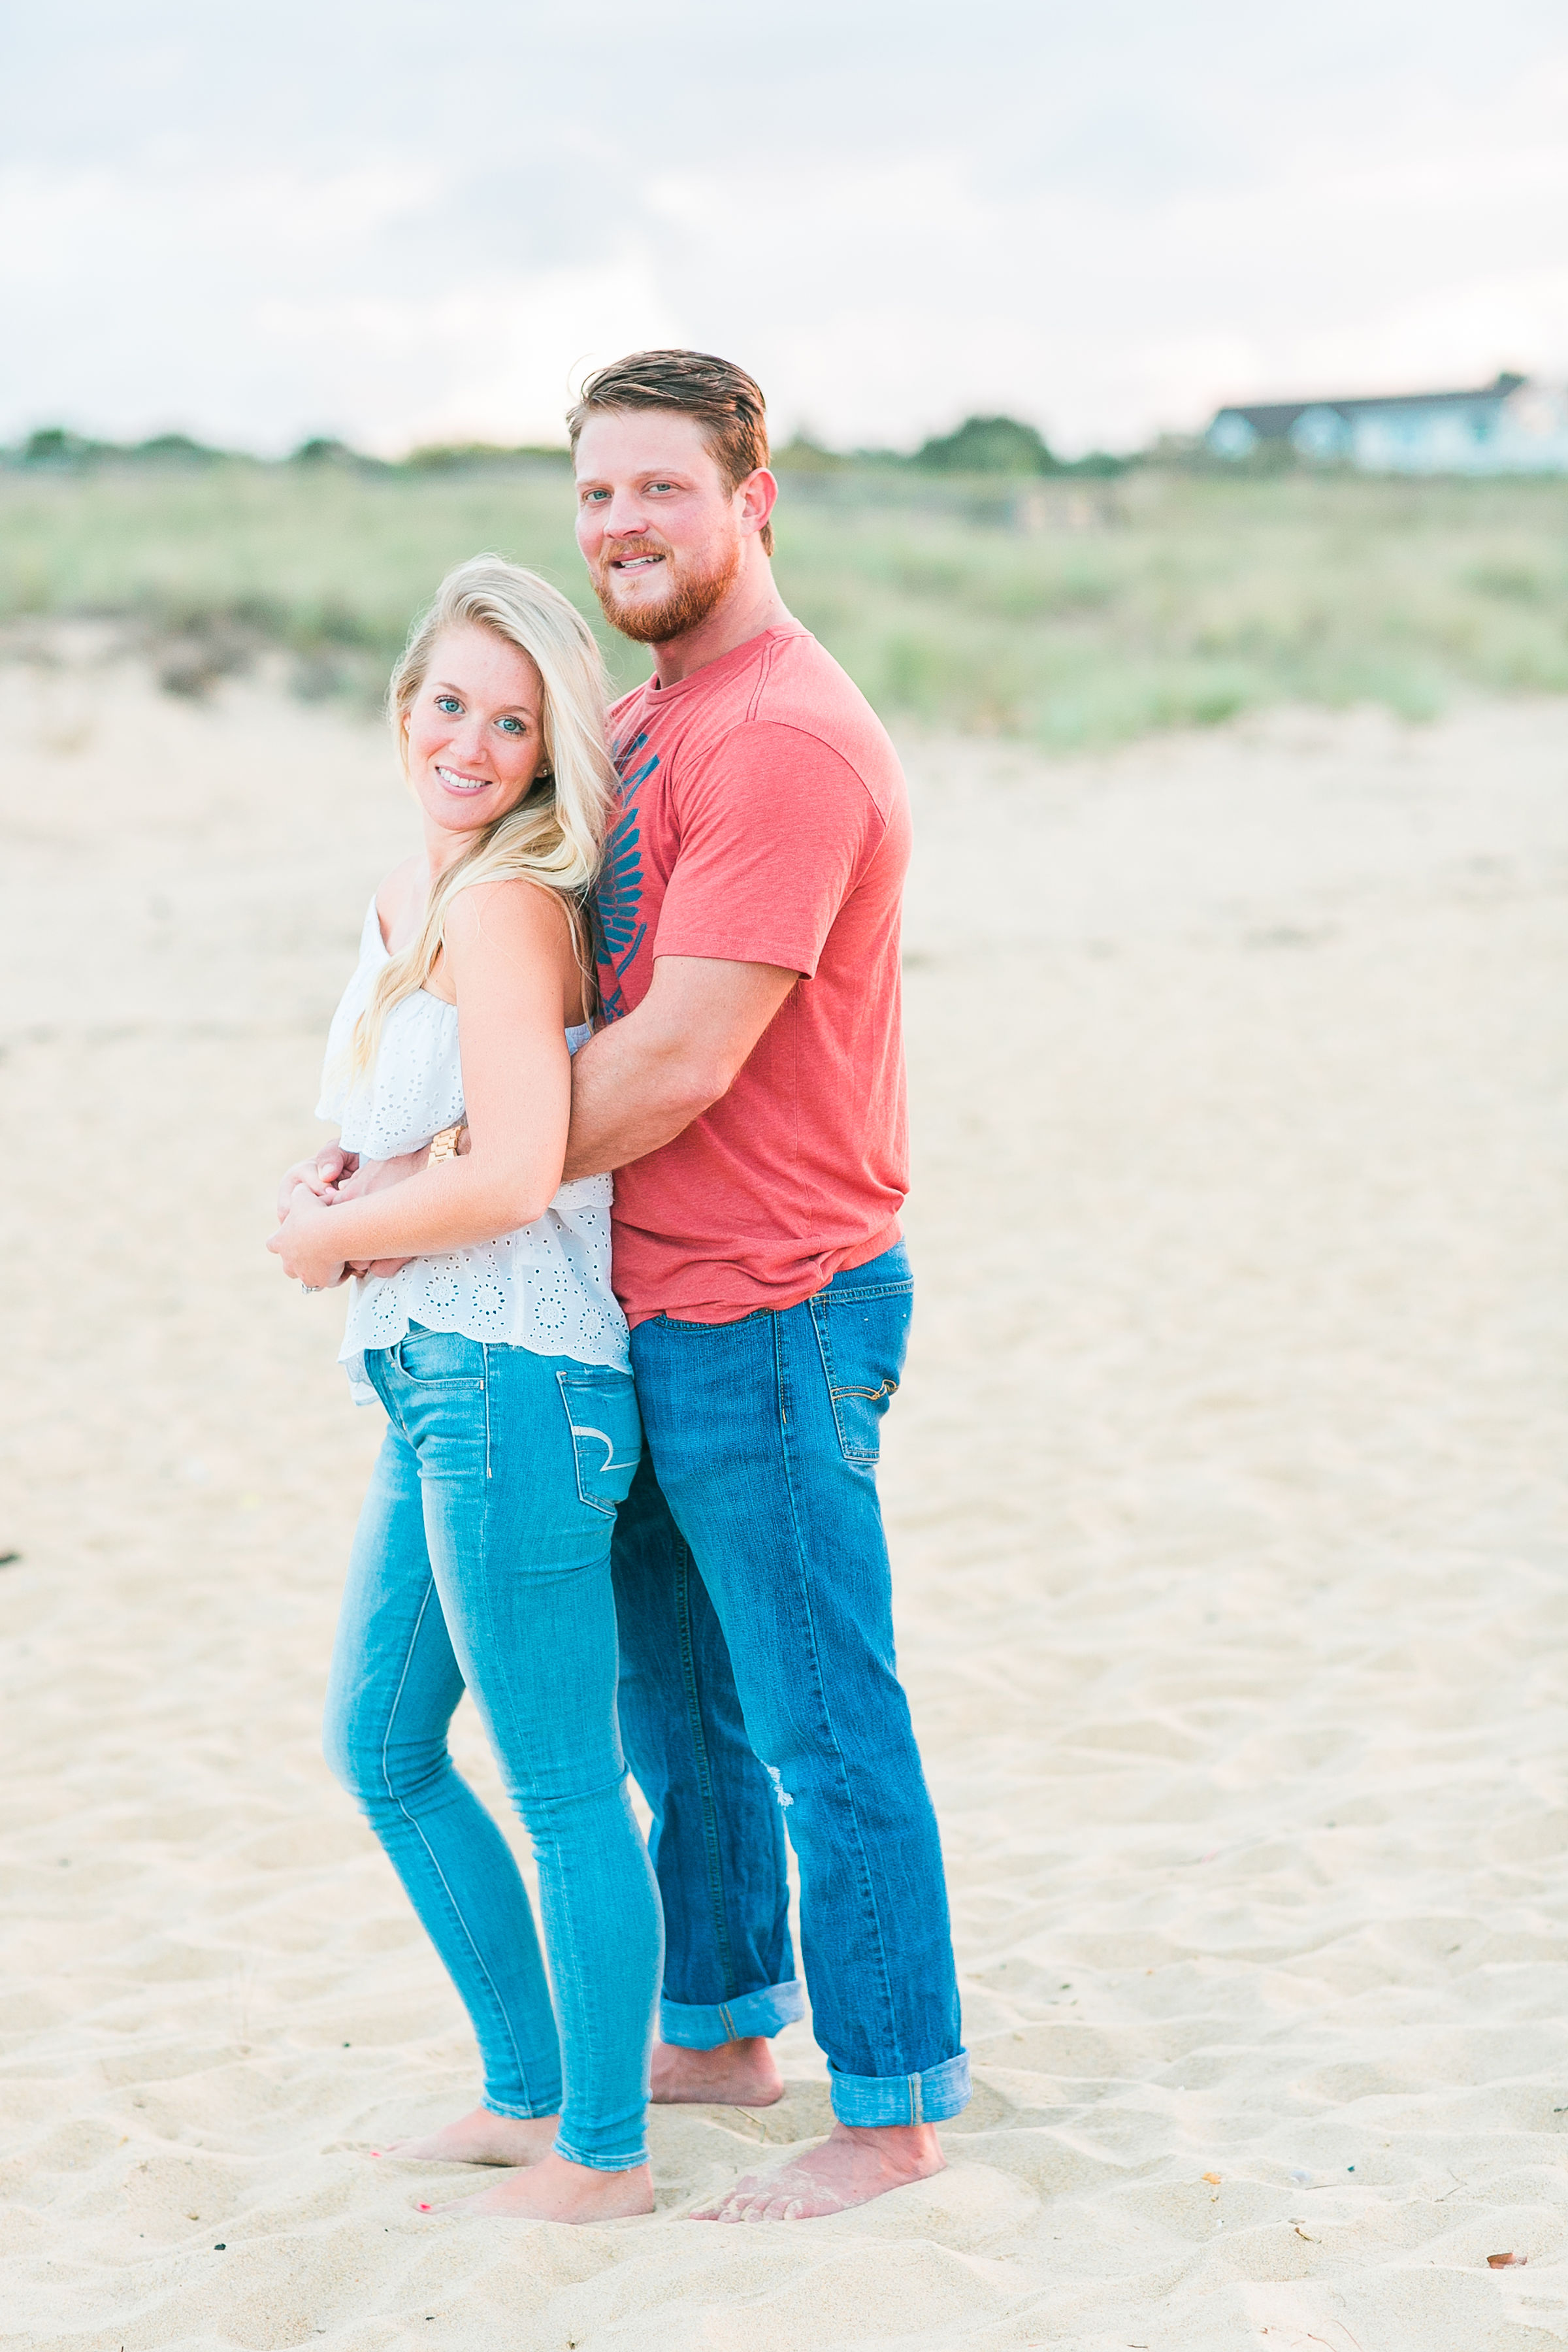 Chelsea&Jordan_Engaged-165.jpg